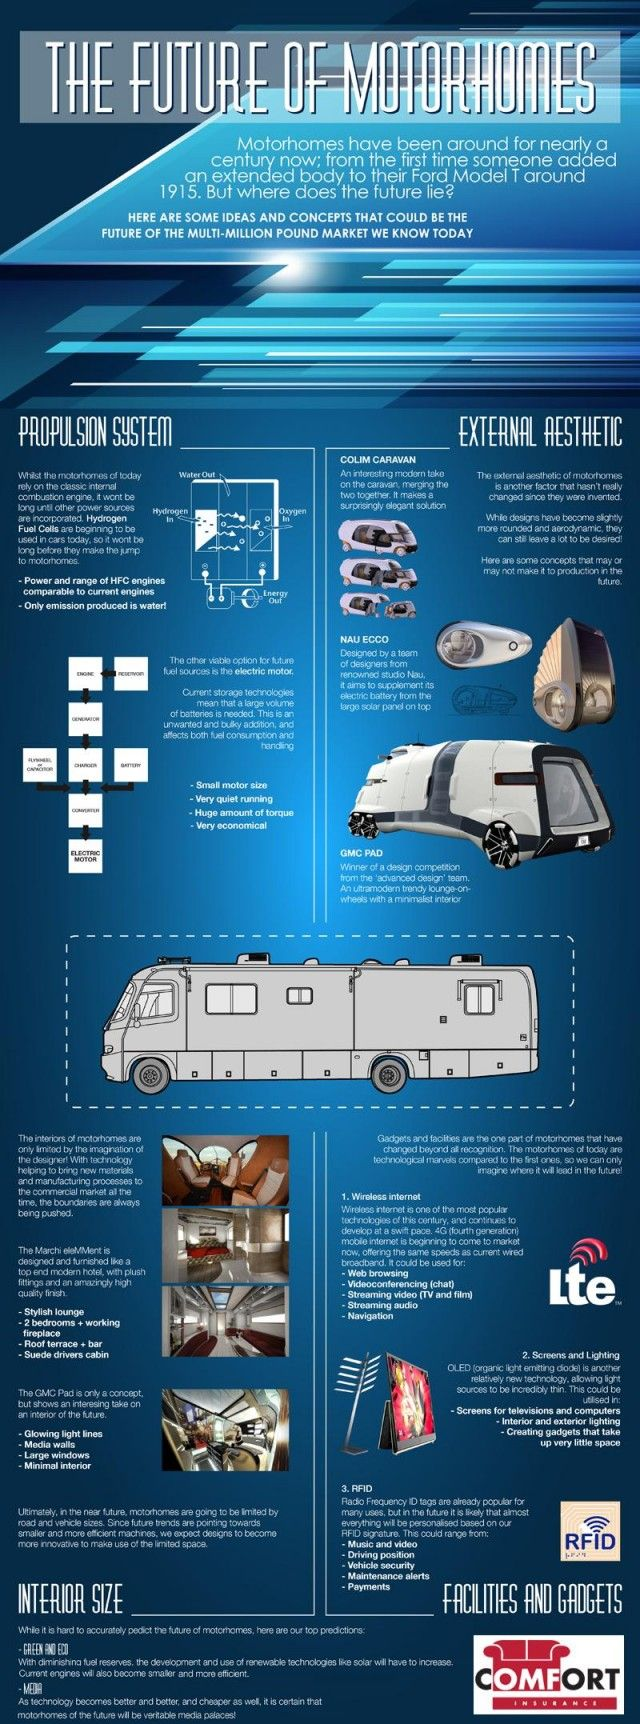 Motorhomes are amazing now-a-days. They are land yachts with the ability to sleep a family or two, but that's not all. With modern technology these mobile homes may seem space-aged. Super thin LED TVs and lightning fast wi-fi turn an ordinary motorhome into a geek's paradise.